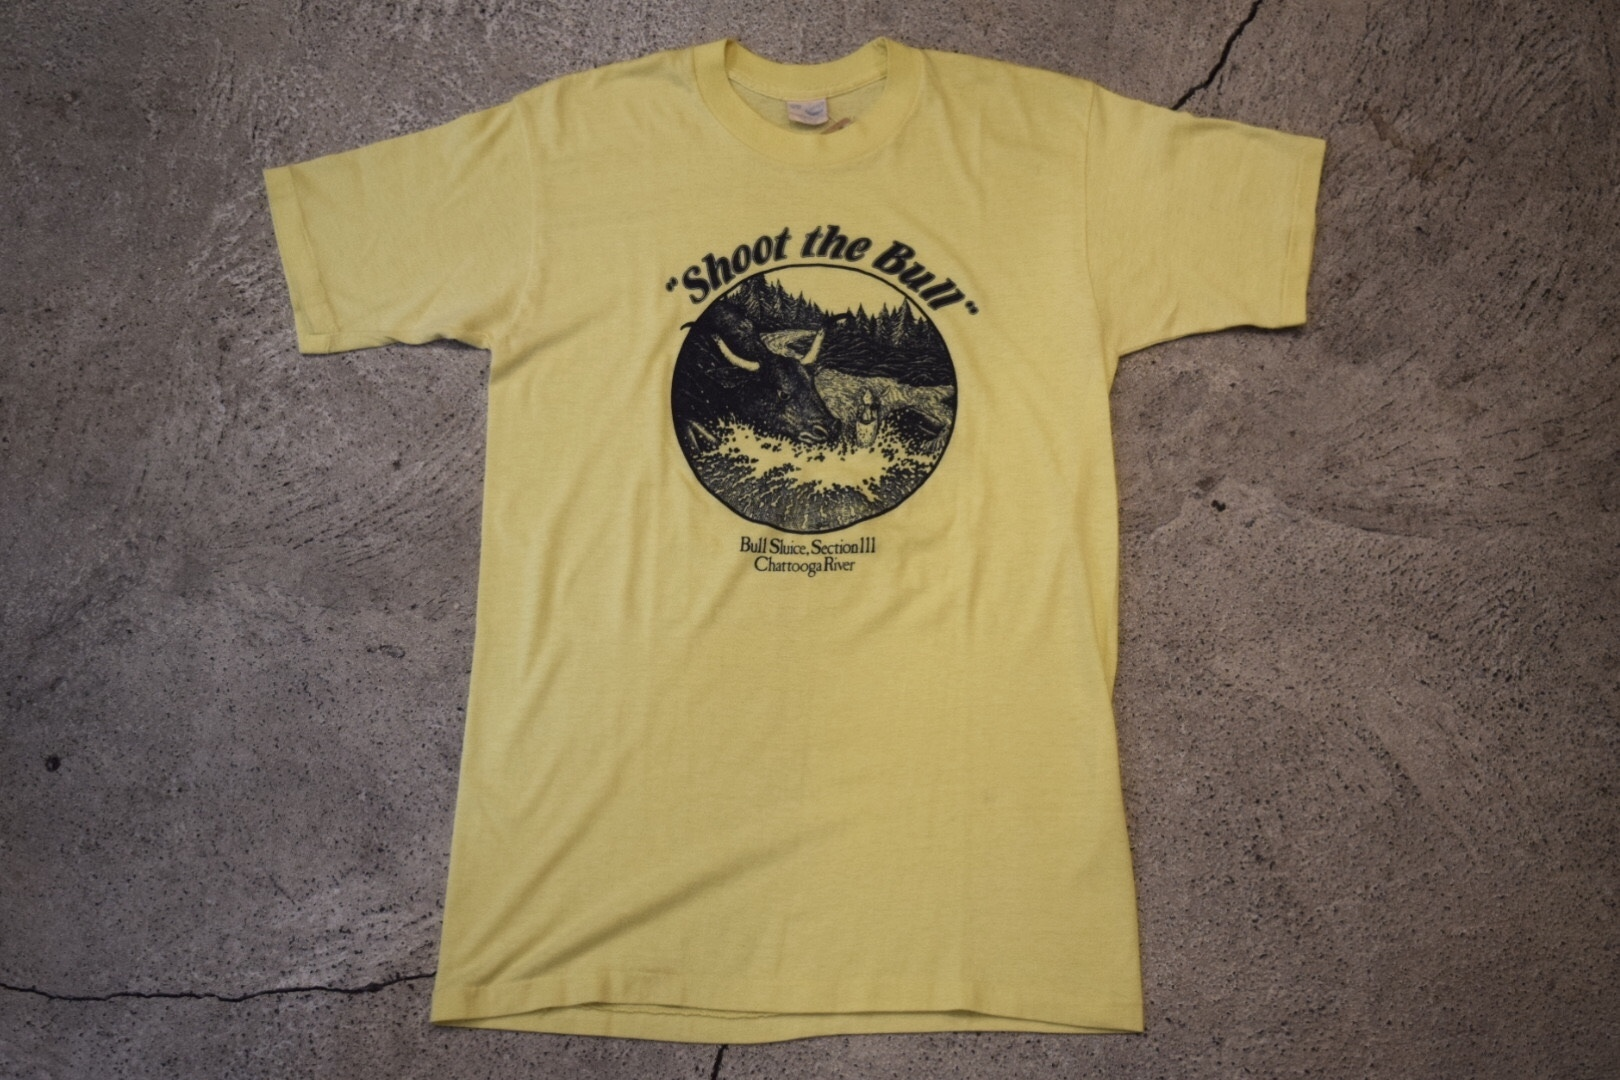 """USED """"Shoot the Bull"""" Chattooga River Vintage T-shirt Sneakers 80s made in USA T0183"""